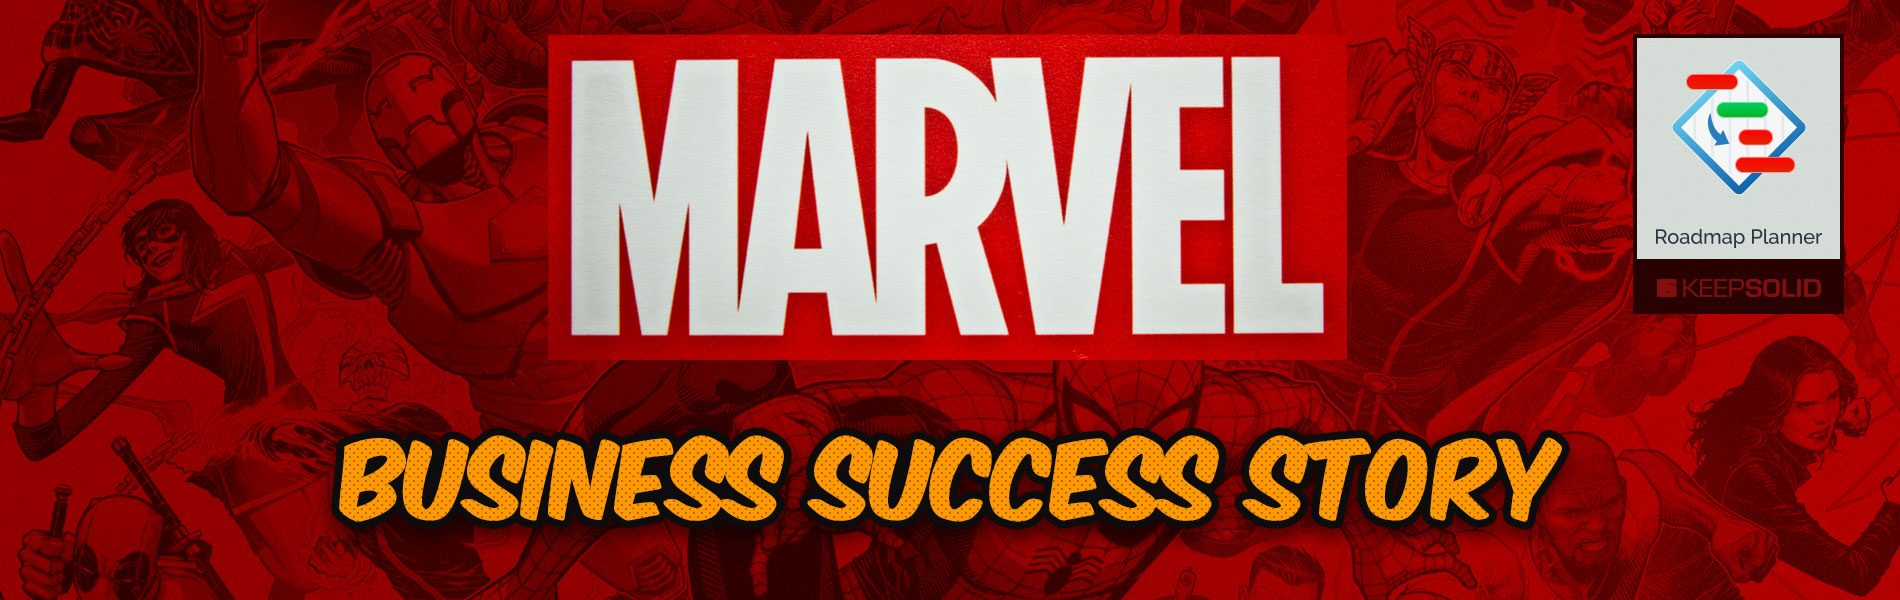 Marvel logo sign printed on banner. Learn business success story of Marvel Comics Group - a publisher of American comic books and related media